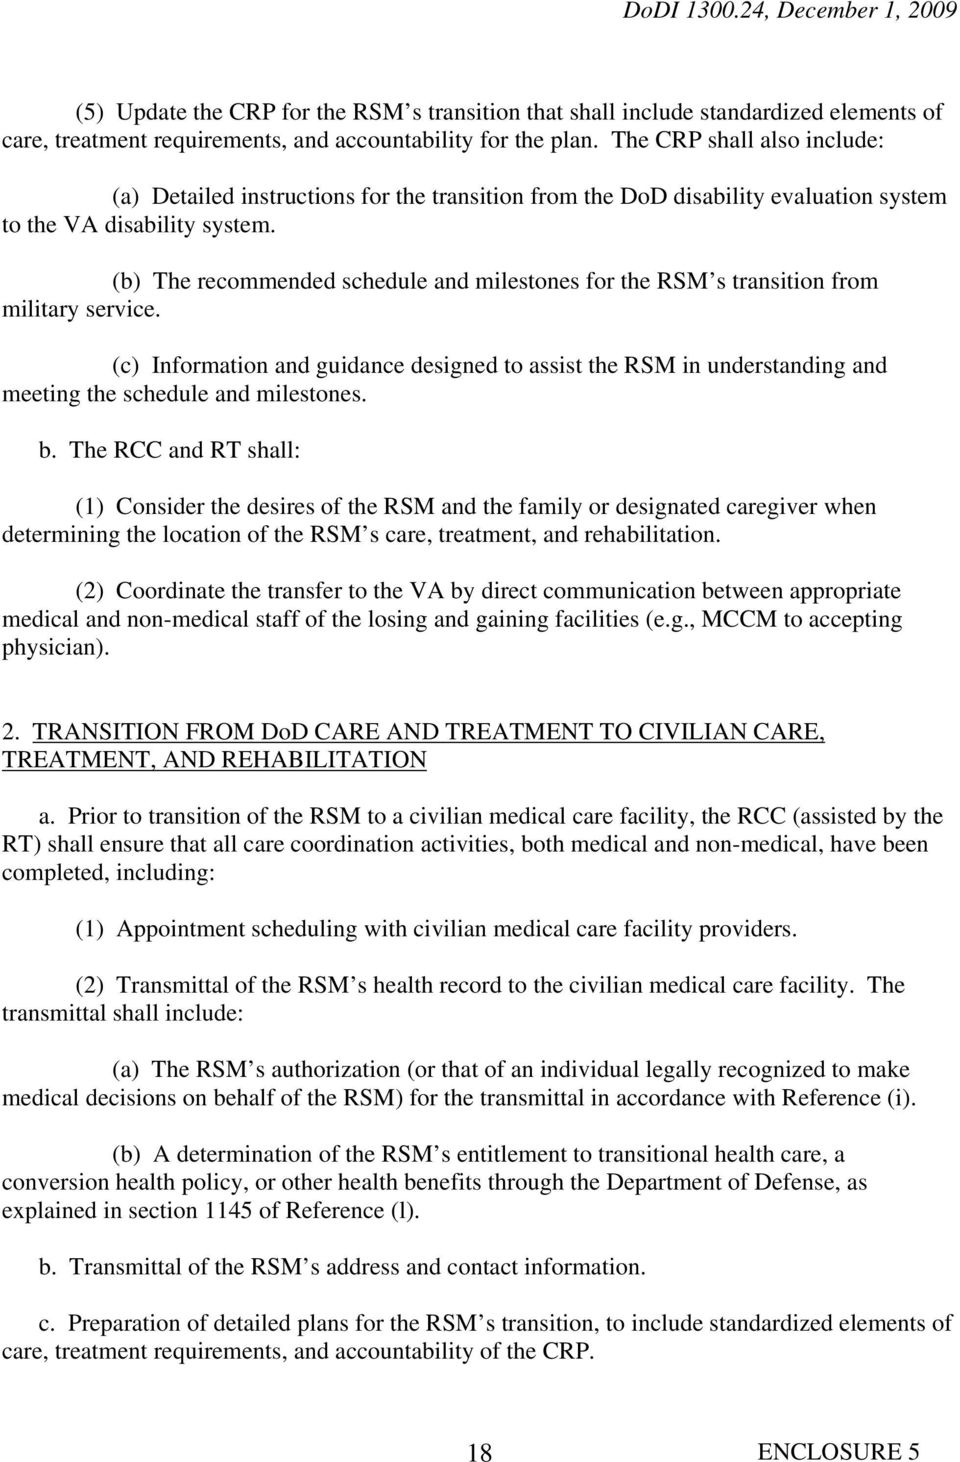 (b) The recommended schedule and milestones for the RSM s transition from military service.